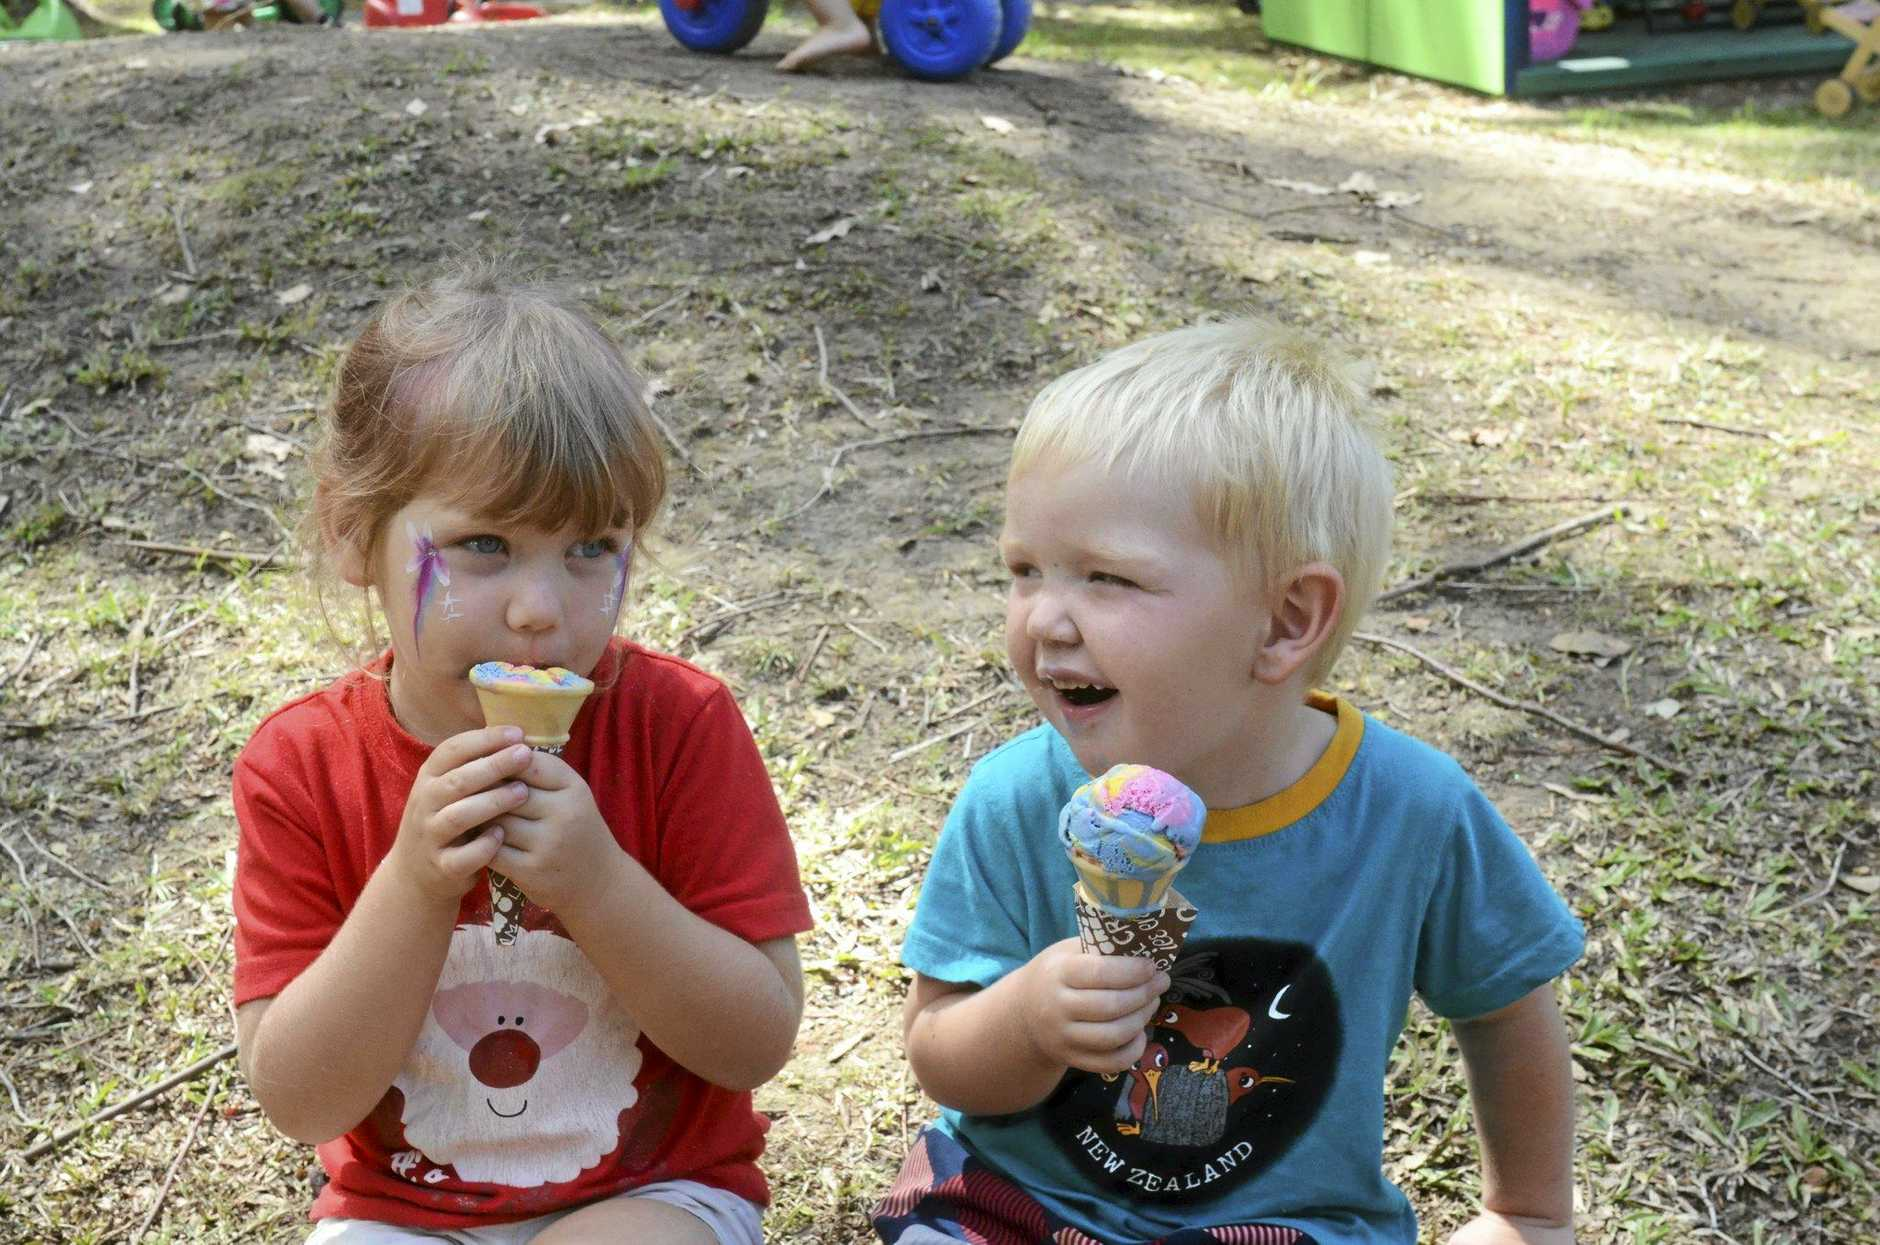 YUM: Lara Clydsedale, 4, and Edward Huntley, 3, enjoy their ice cream at the Clarence Valley's Big Playgroup Day, Monday March 21.